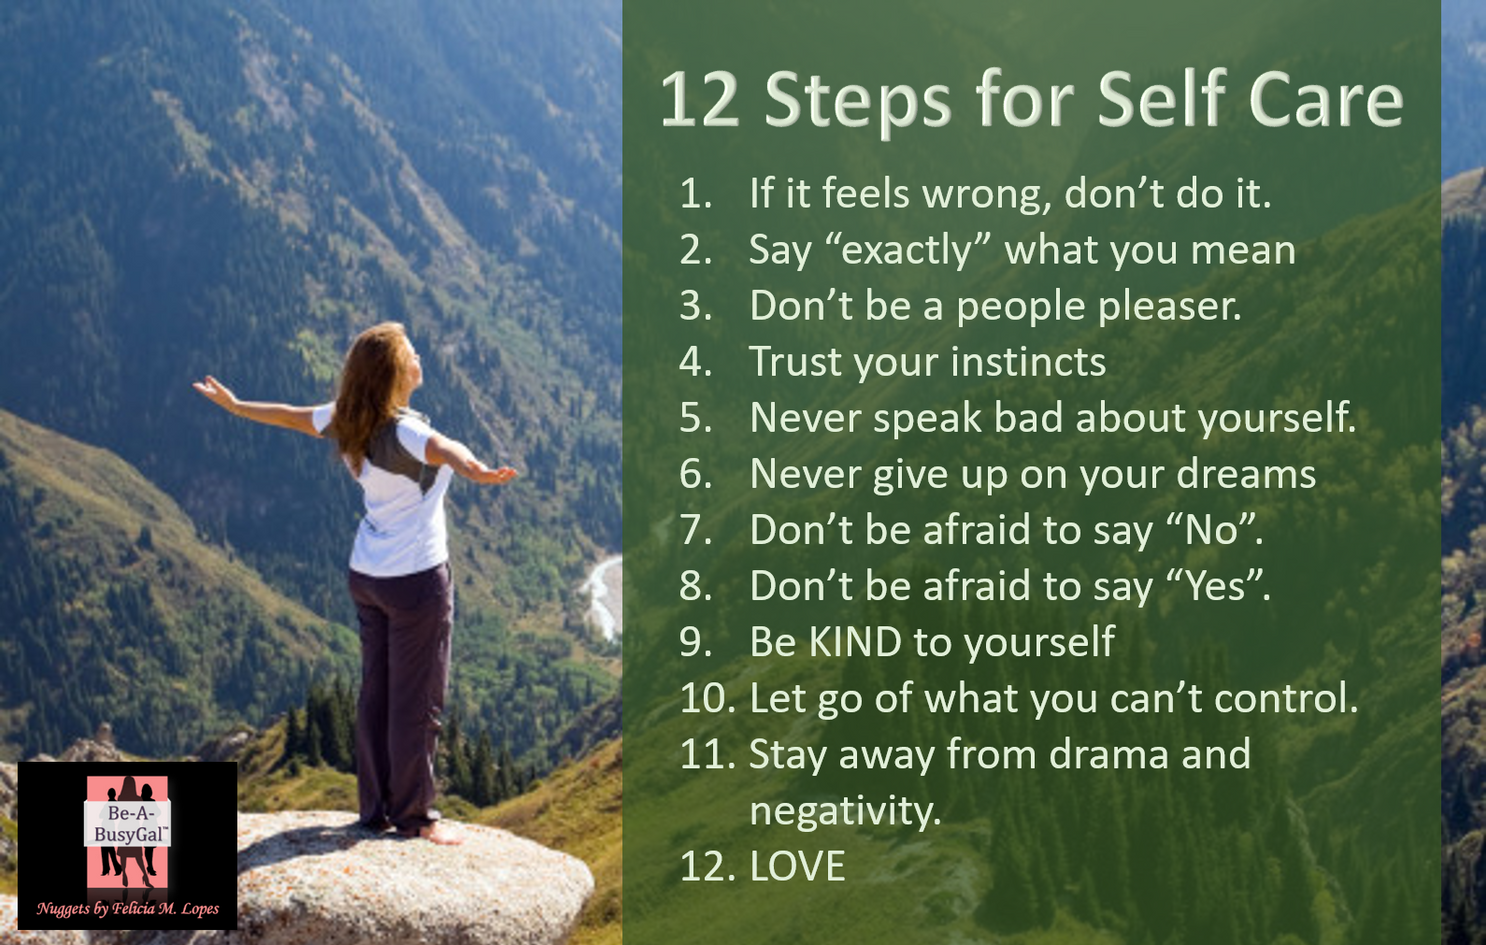 12 Steps for Self Care.png